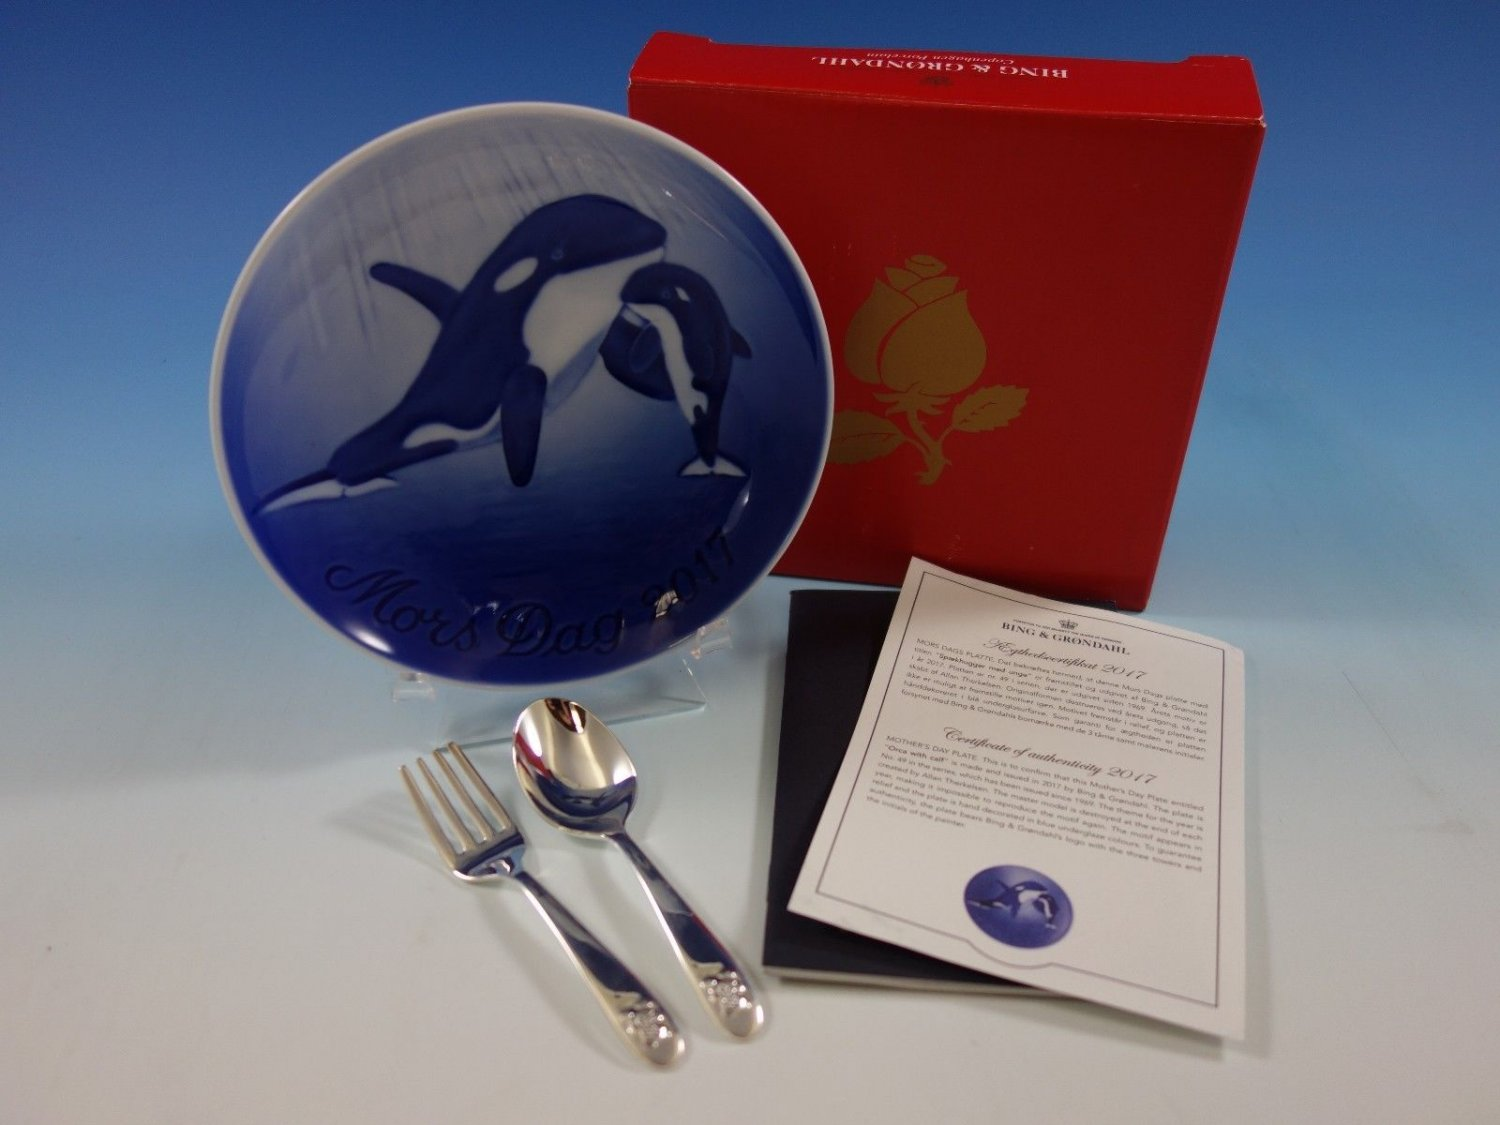 Bing & Grondahl 2017 Mother's Mothers Day Plate Orca w/ Calf B&G New In Box Mint